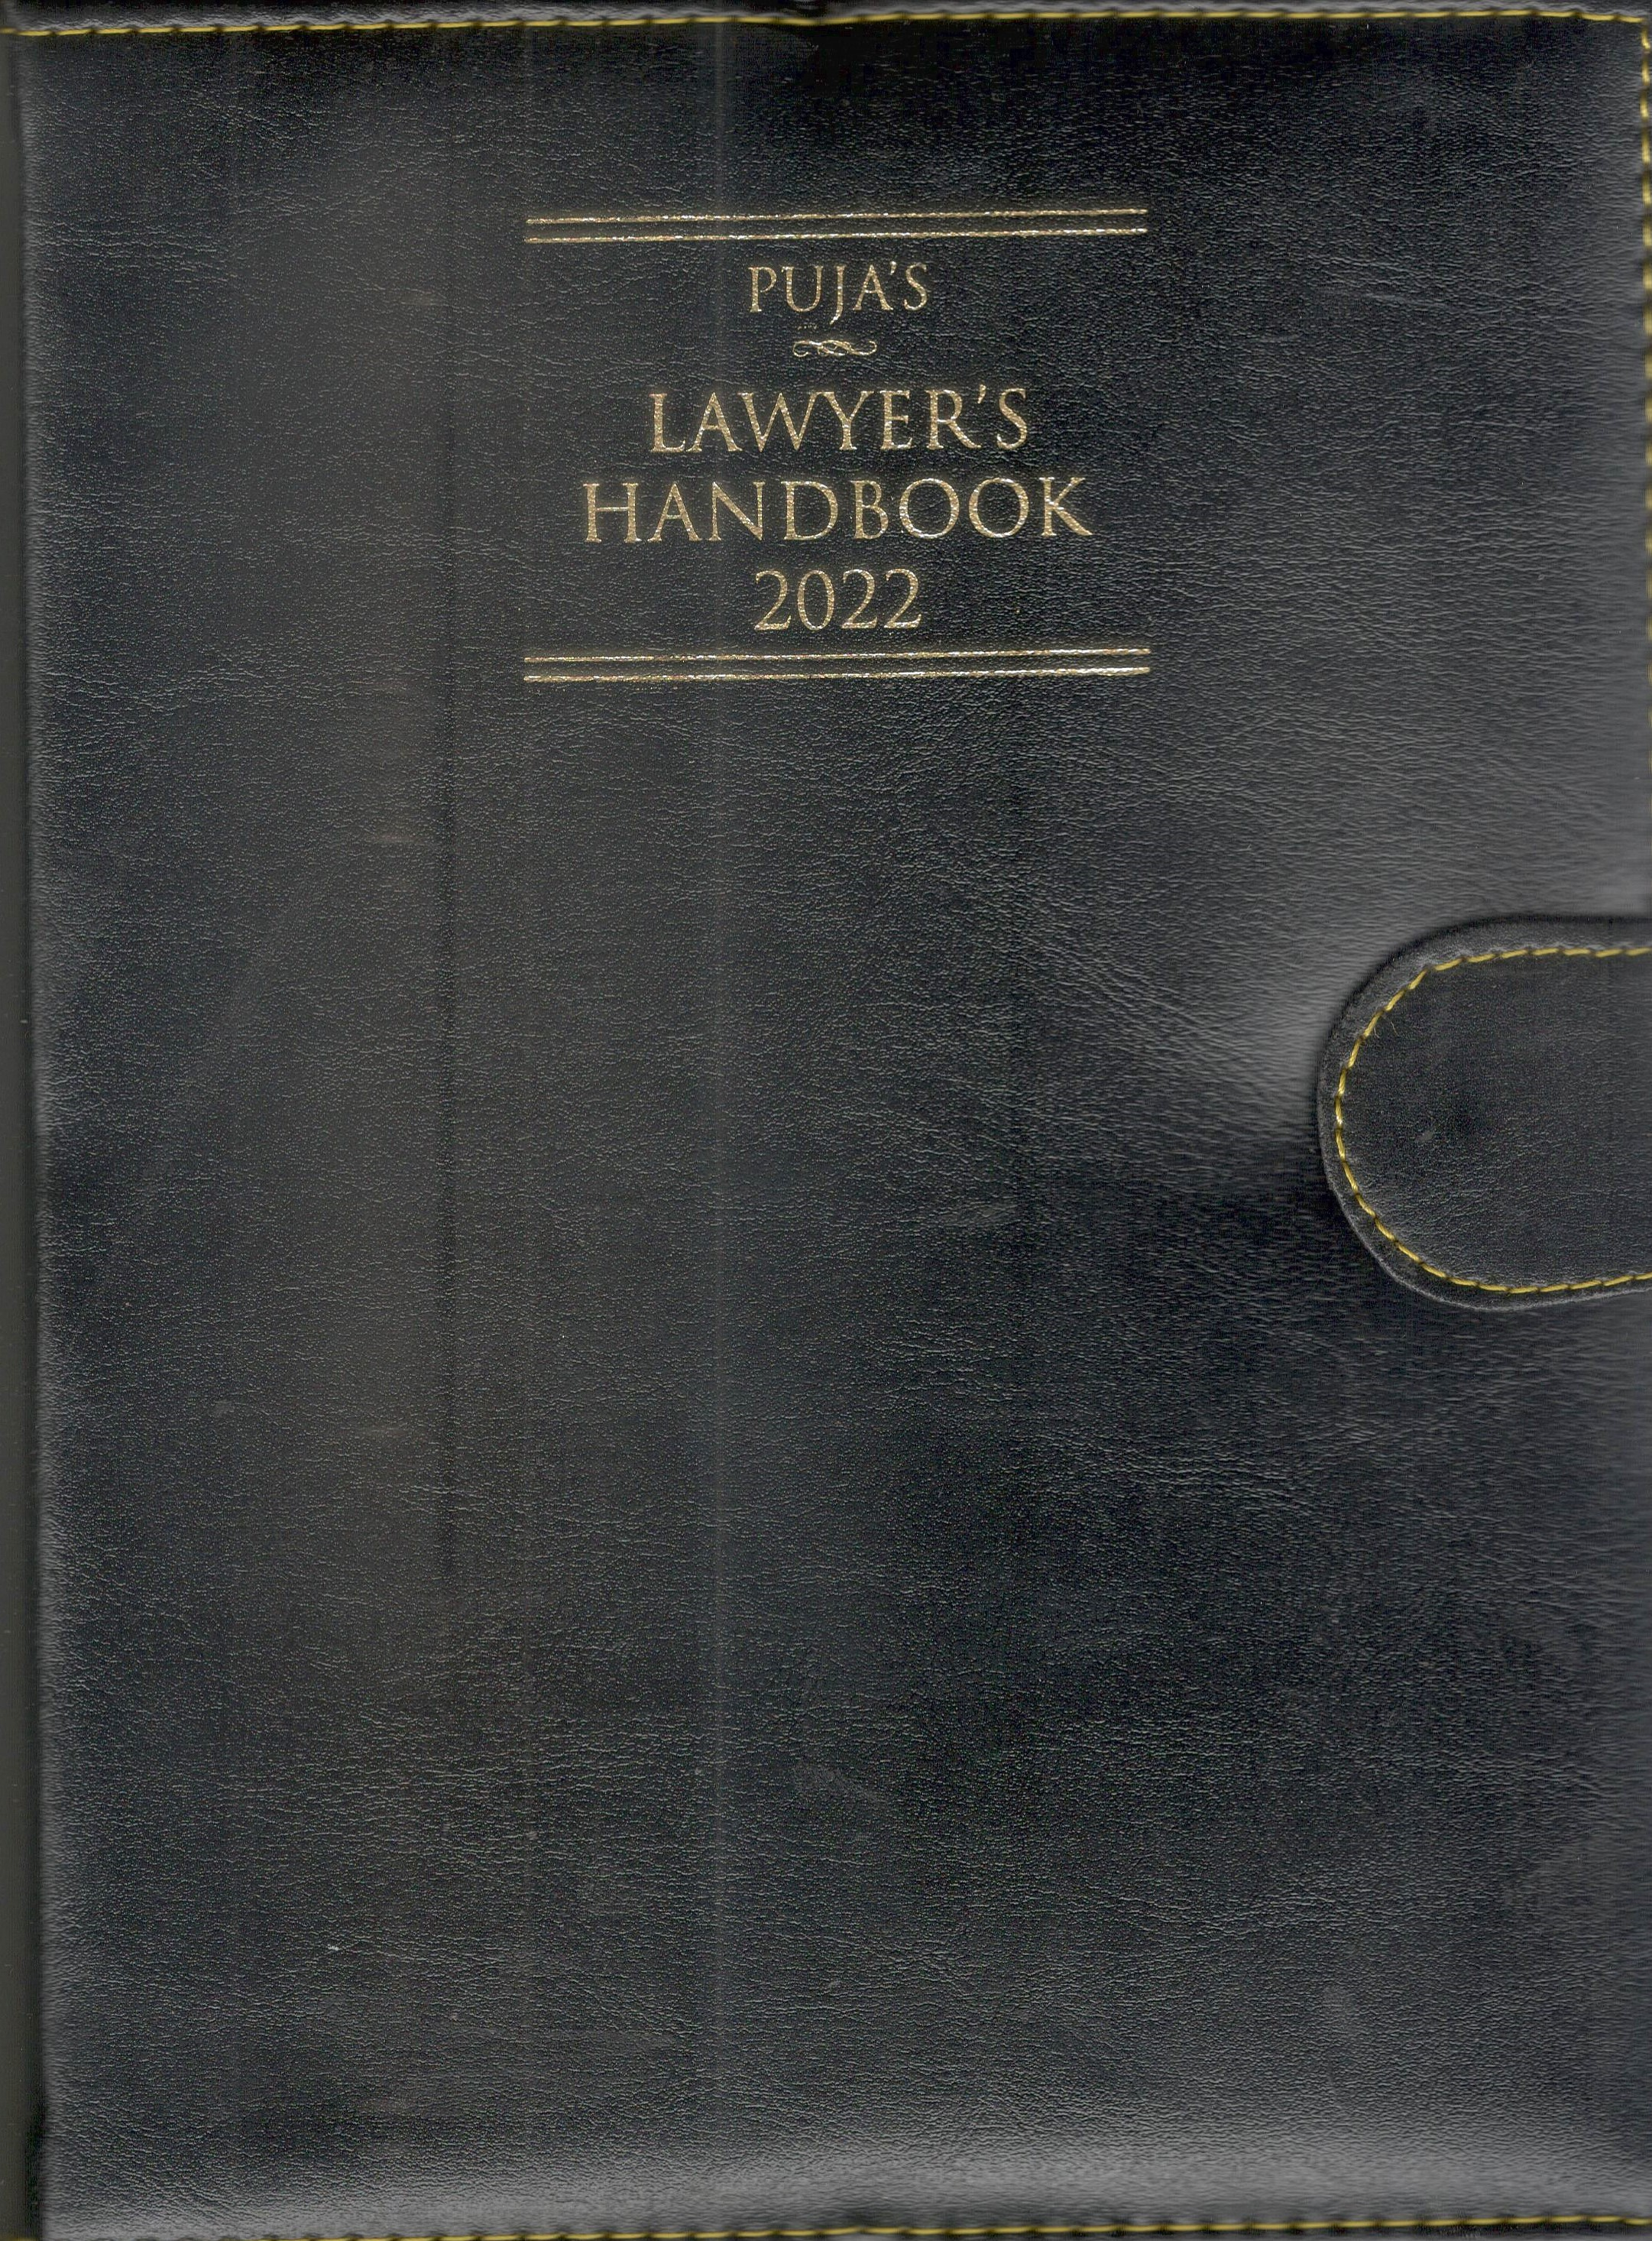 Puja's Lawyer's Handbook 2022 - Black Executive Big Size with Button